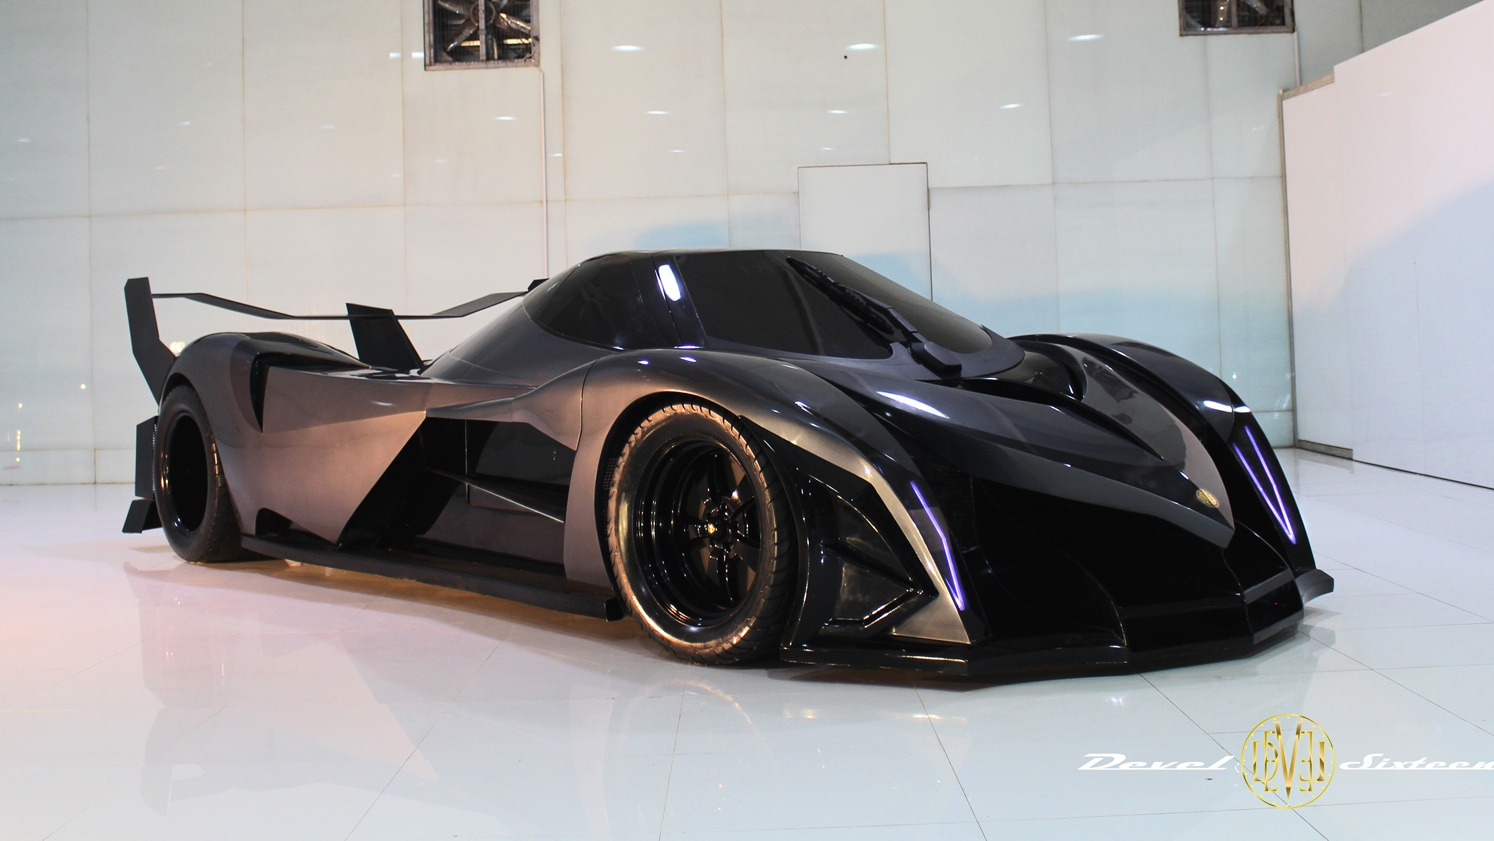 News 3 700kw Devel Sixteen Could Make Production Debut In Dubai